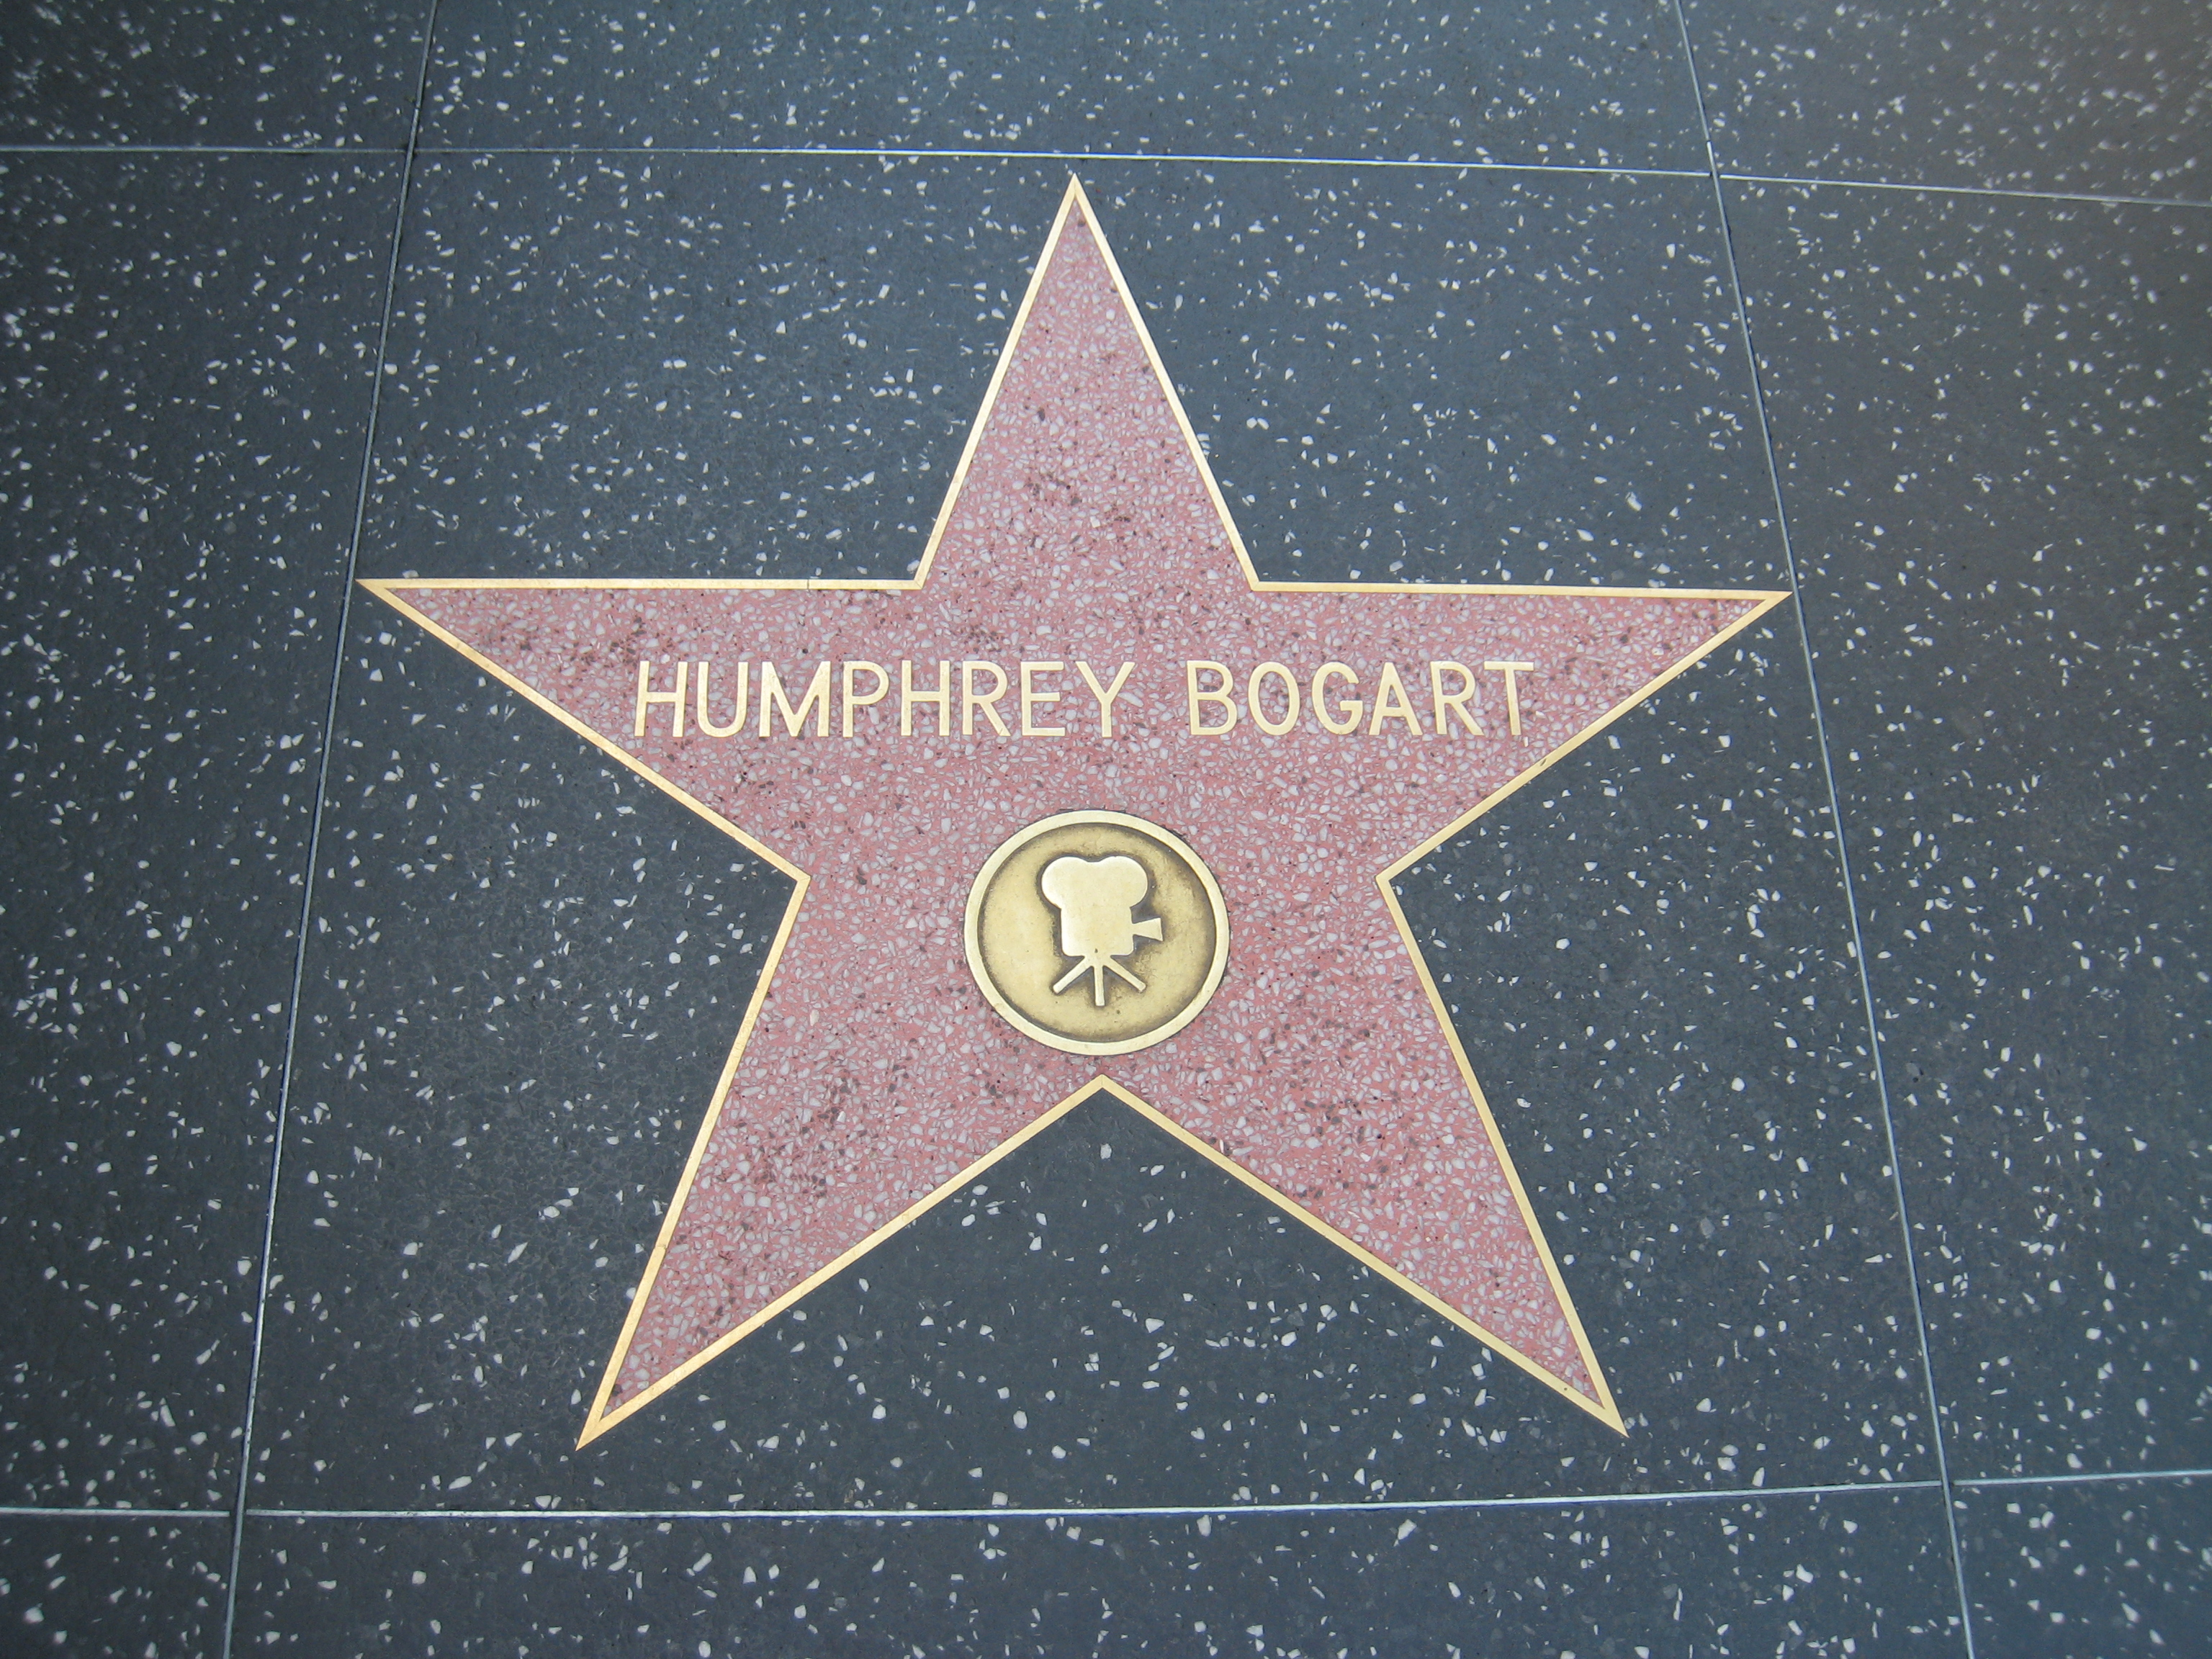 Humphrey Bogart facts